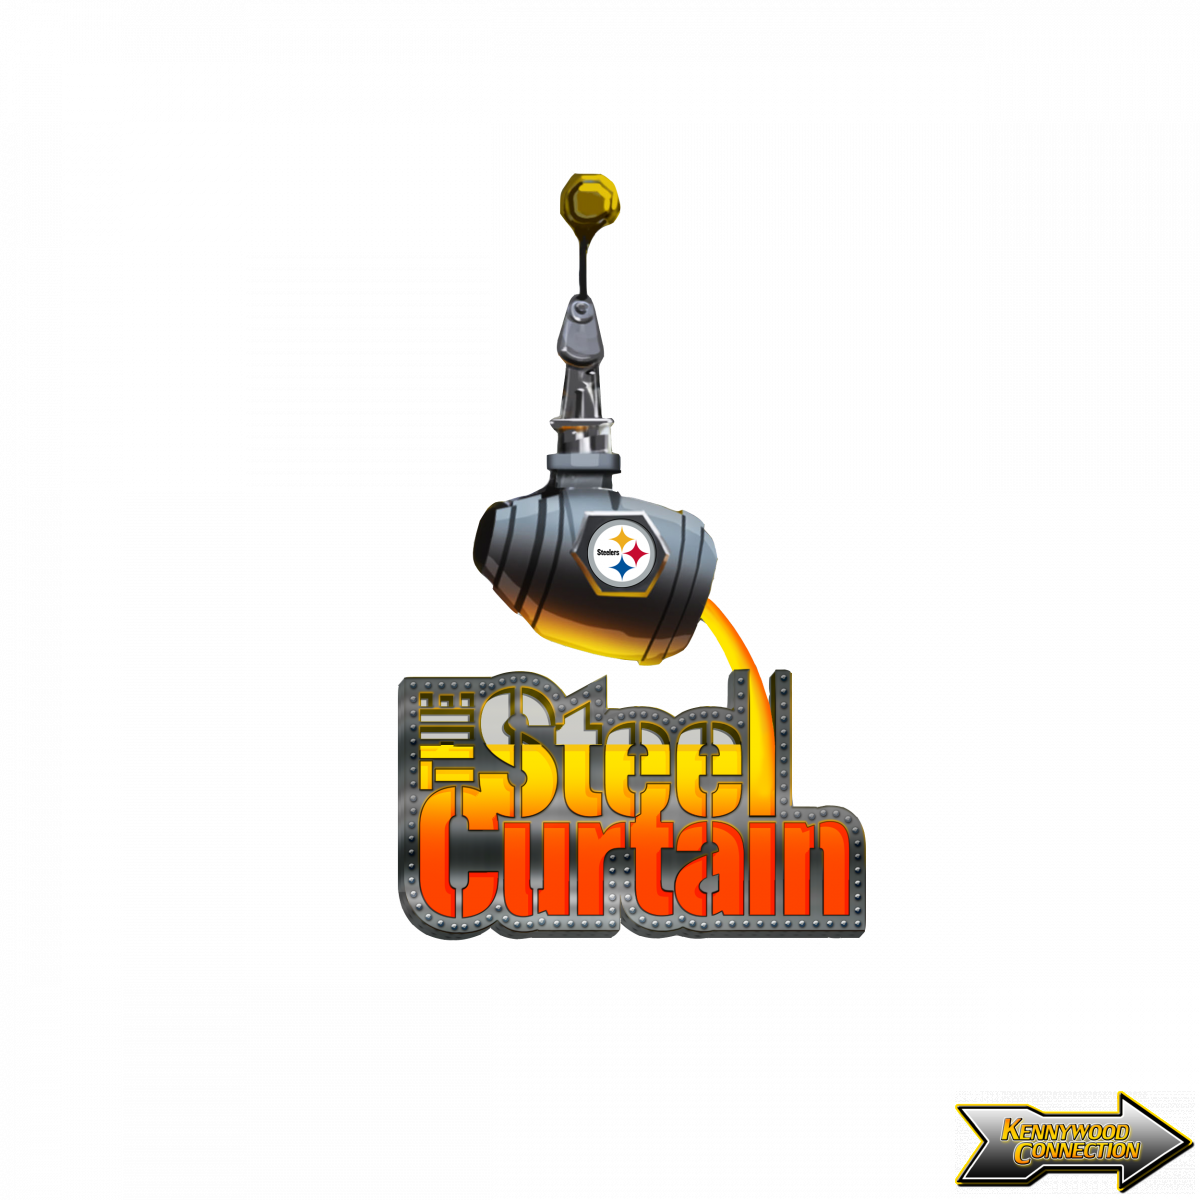 Steel Curtain coaster logo (1)